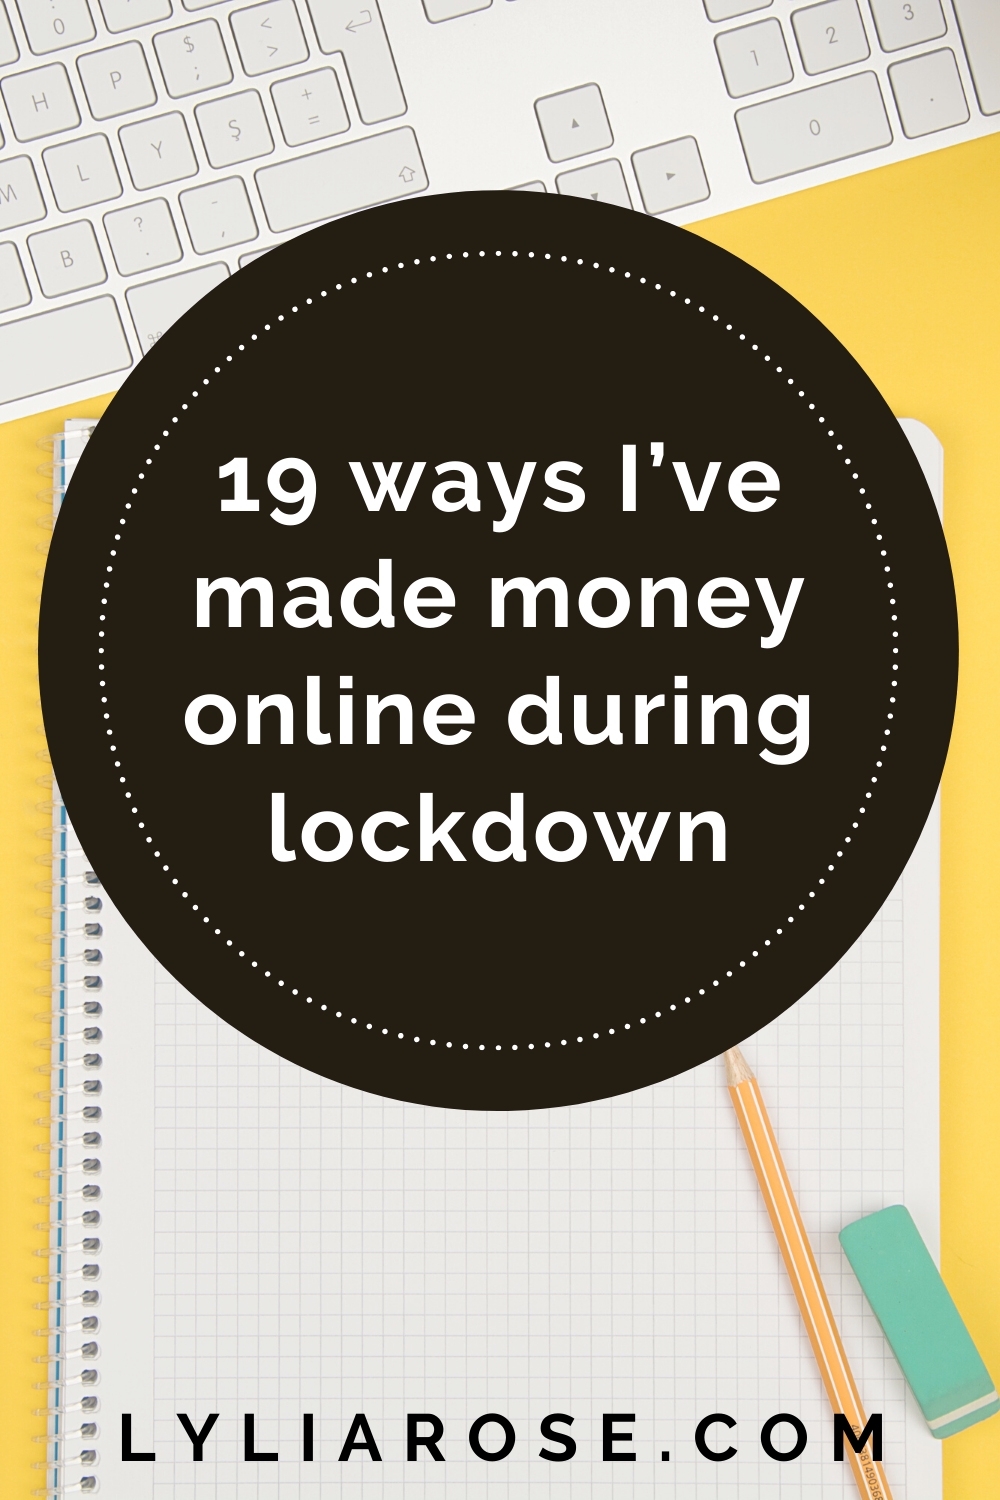 19 ways I've made money from home during the coronavirus lockdown (3)